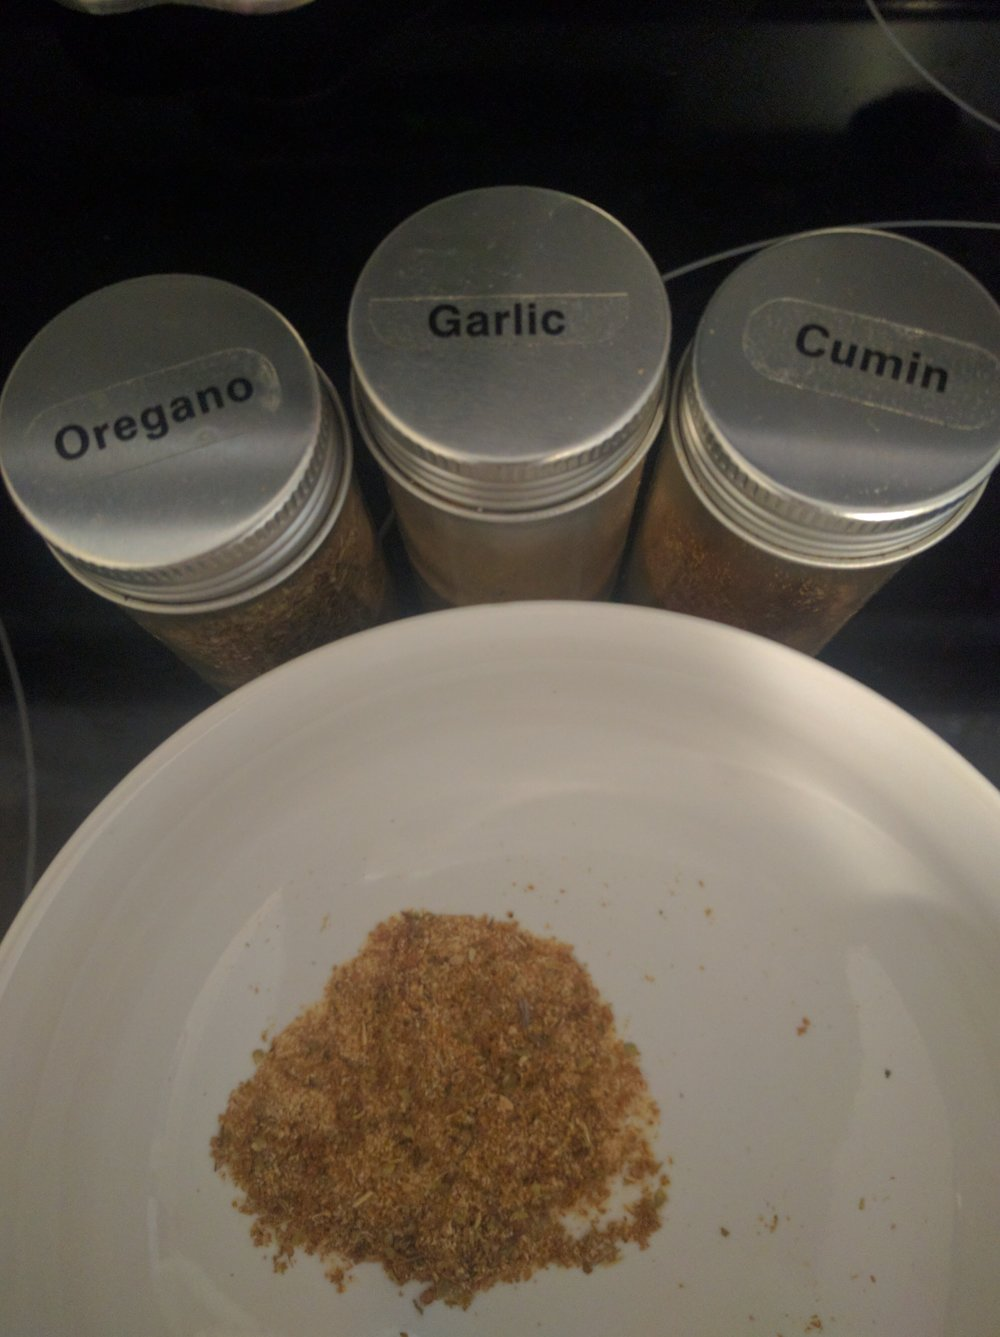 I find it helpful to mix your spices together as opposed to sprinkling them individually.